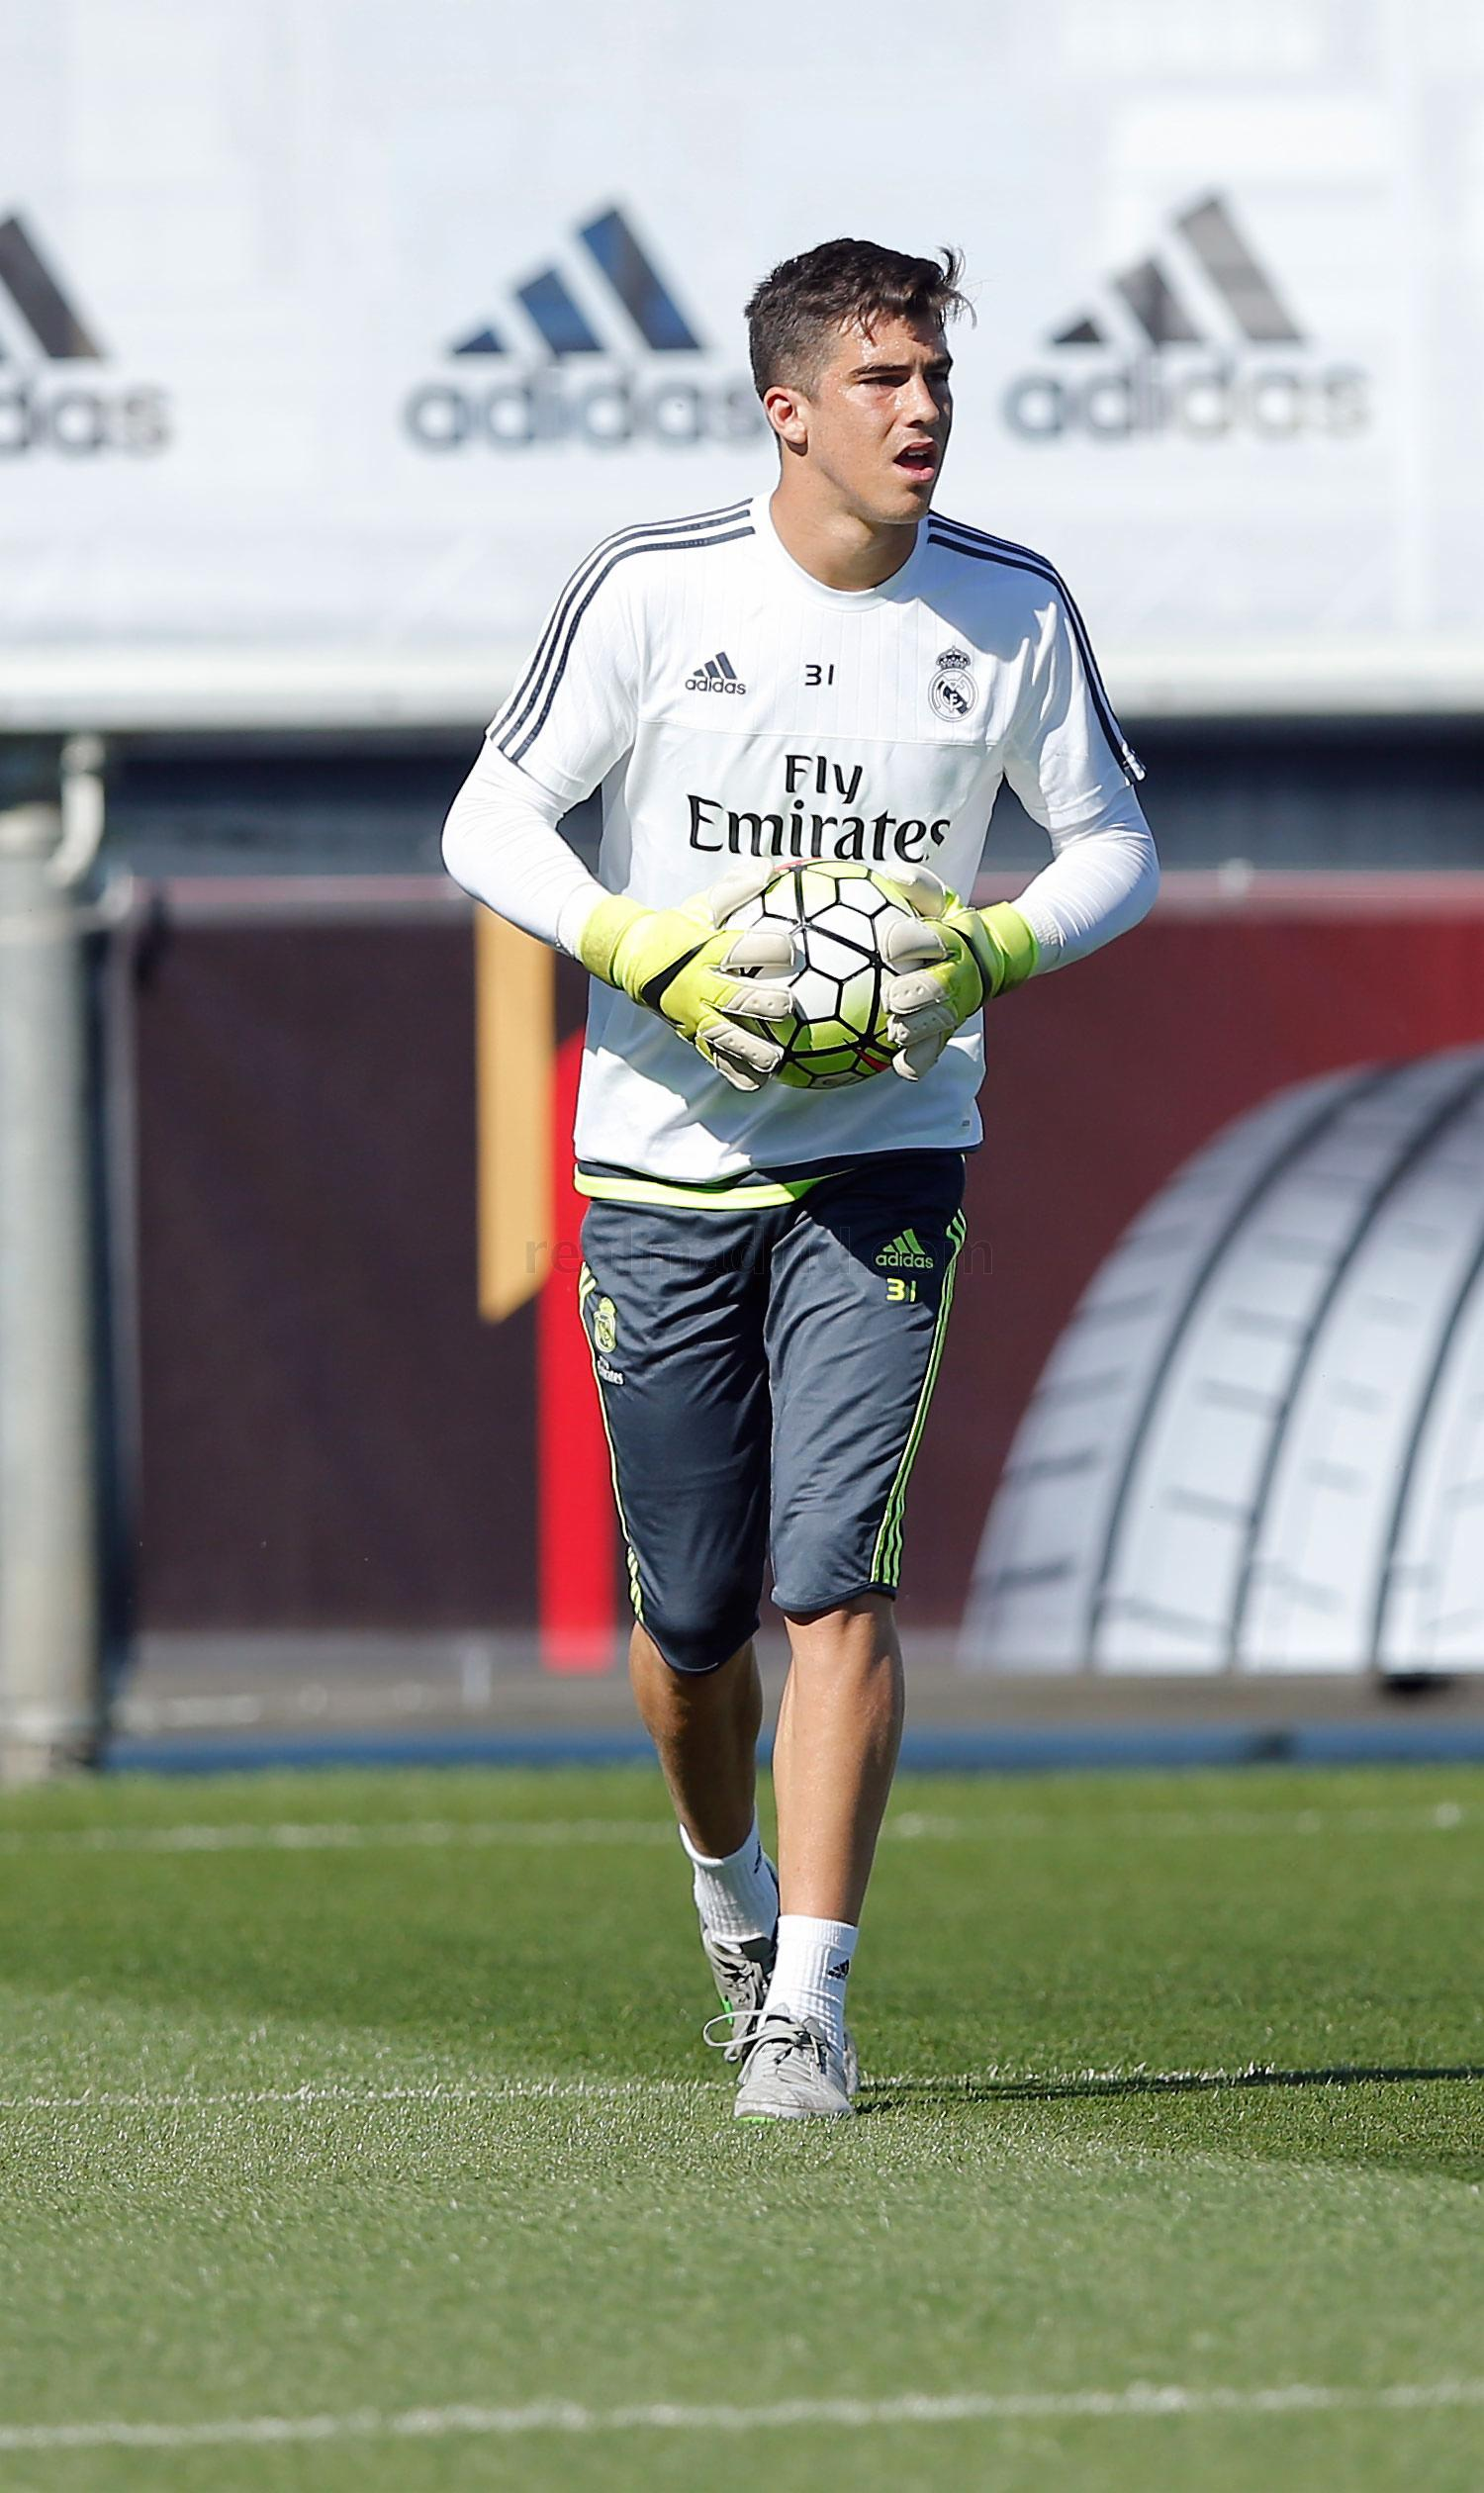 Real Madrid - Entrenamiento del Real Madrid - 22-09-2015